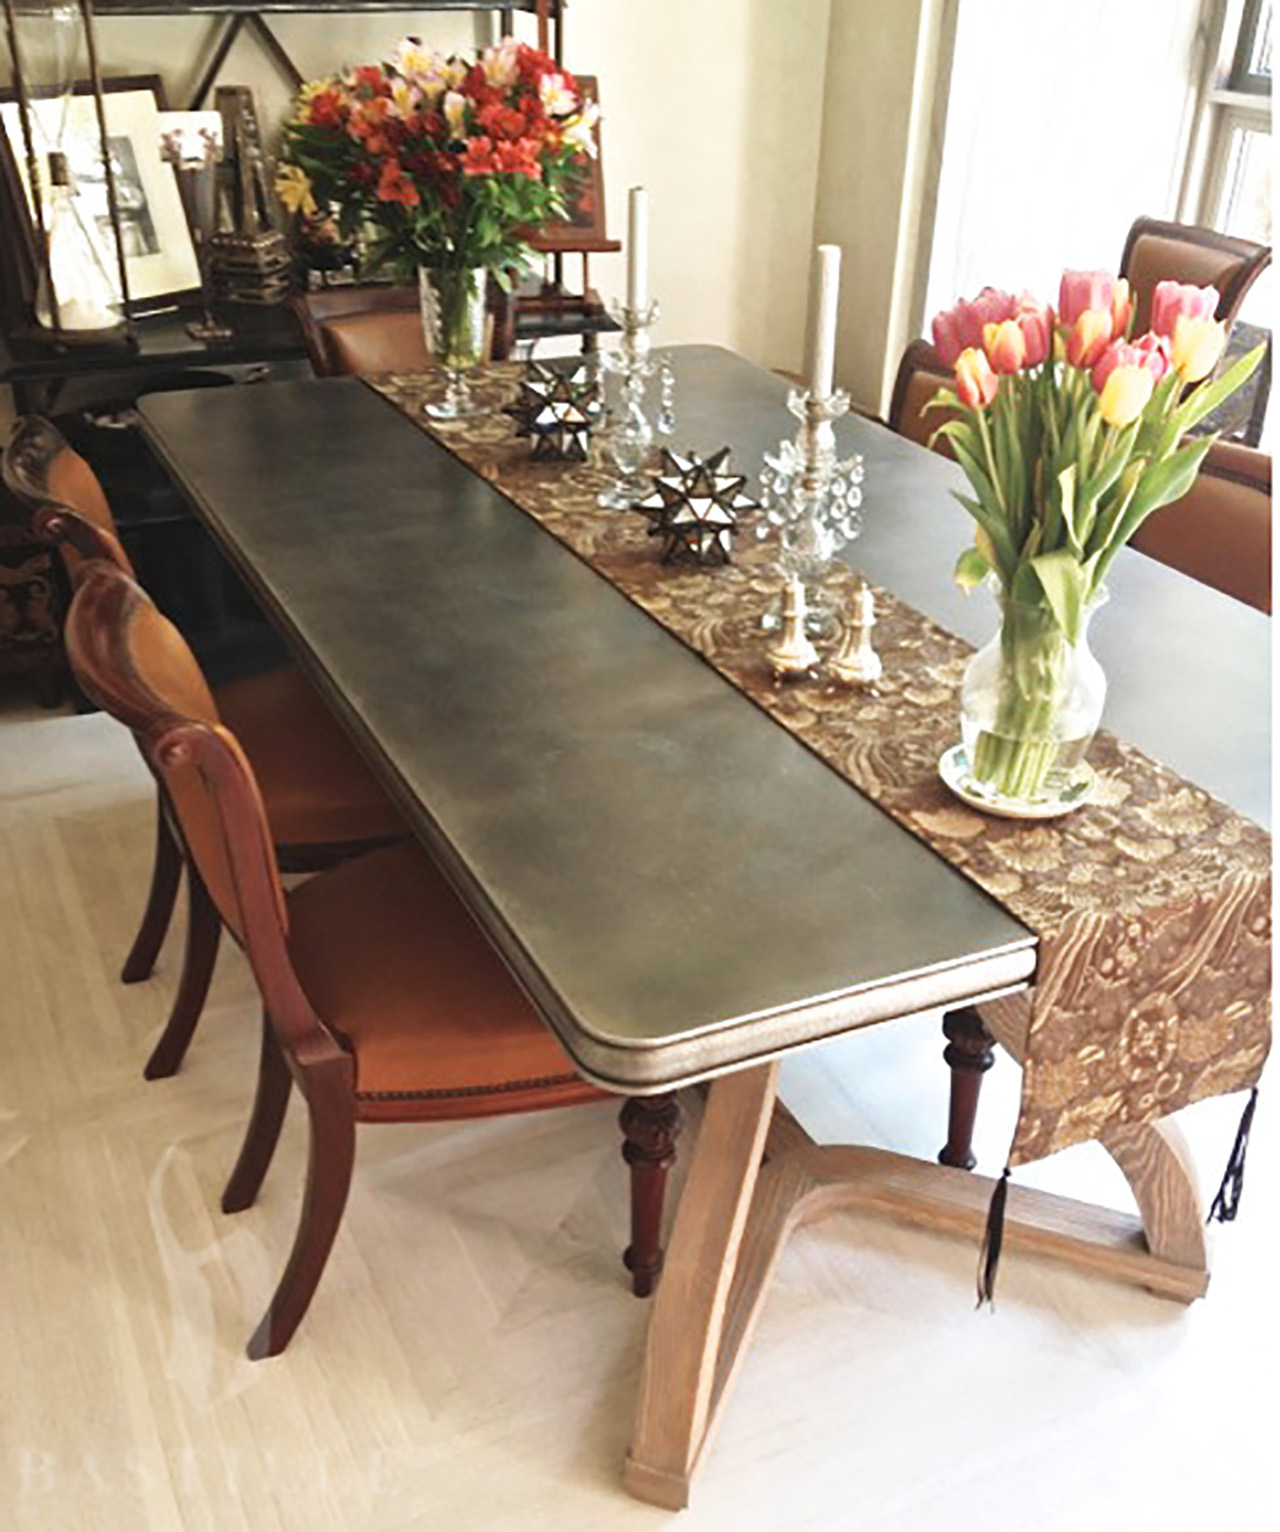 Cast Zinc Statement Dining Room Table - La Bastille